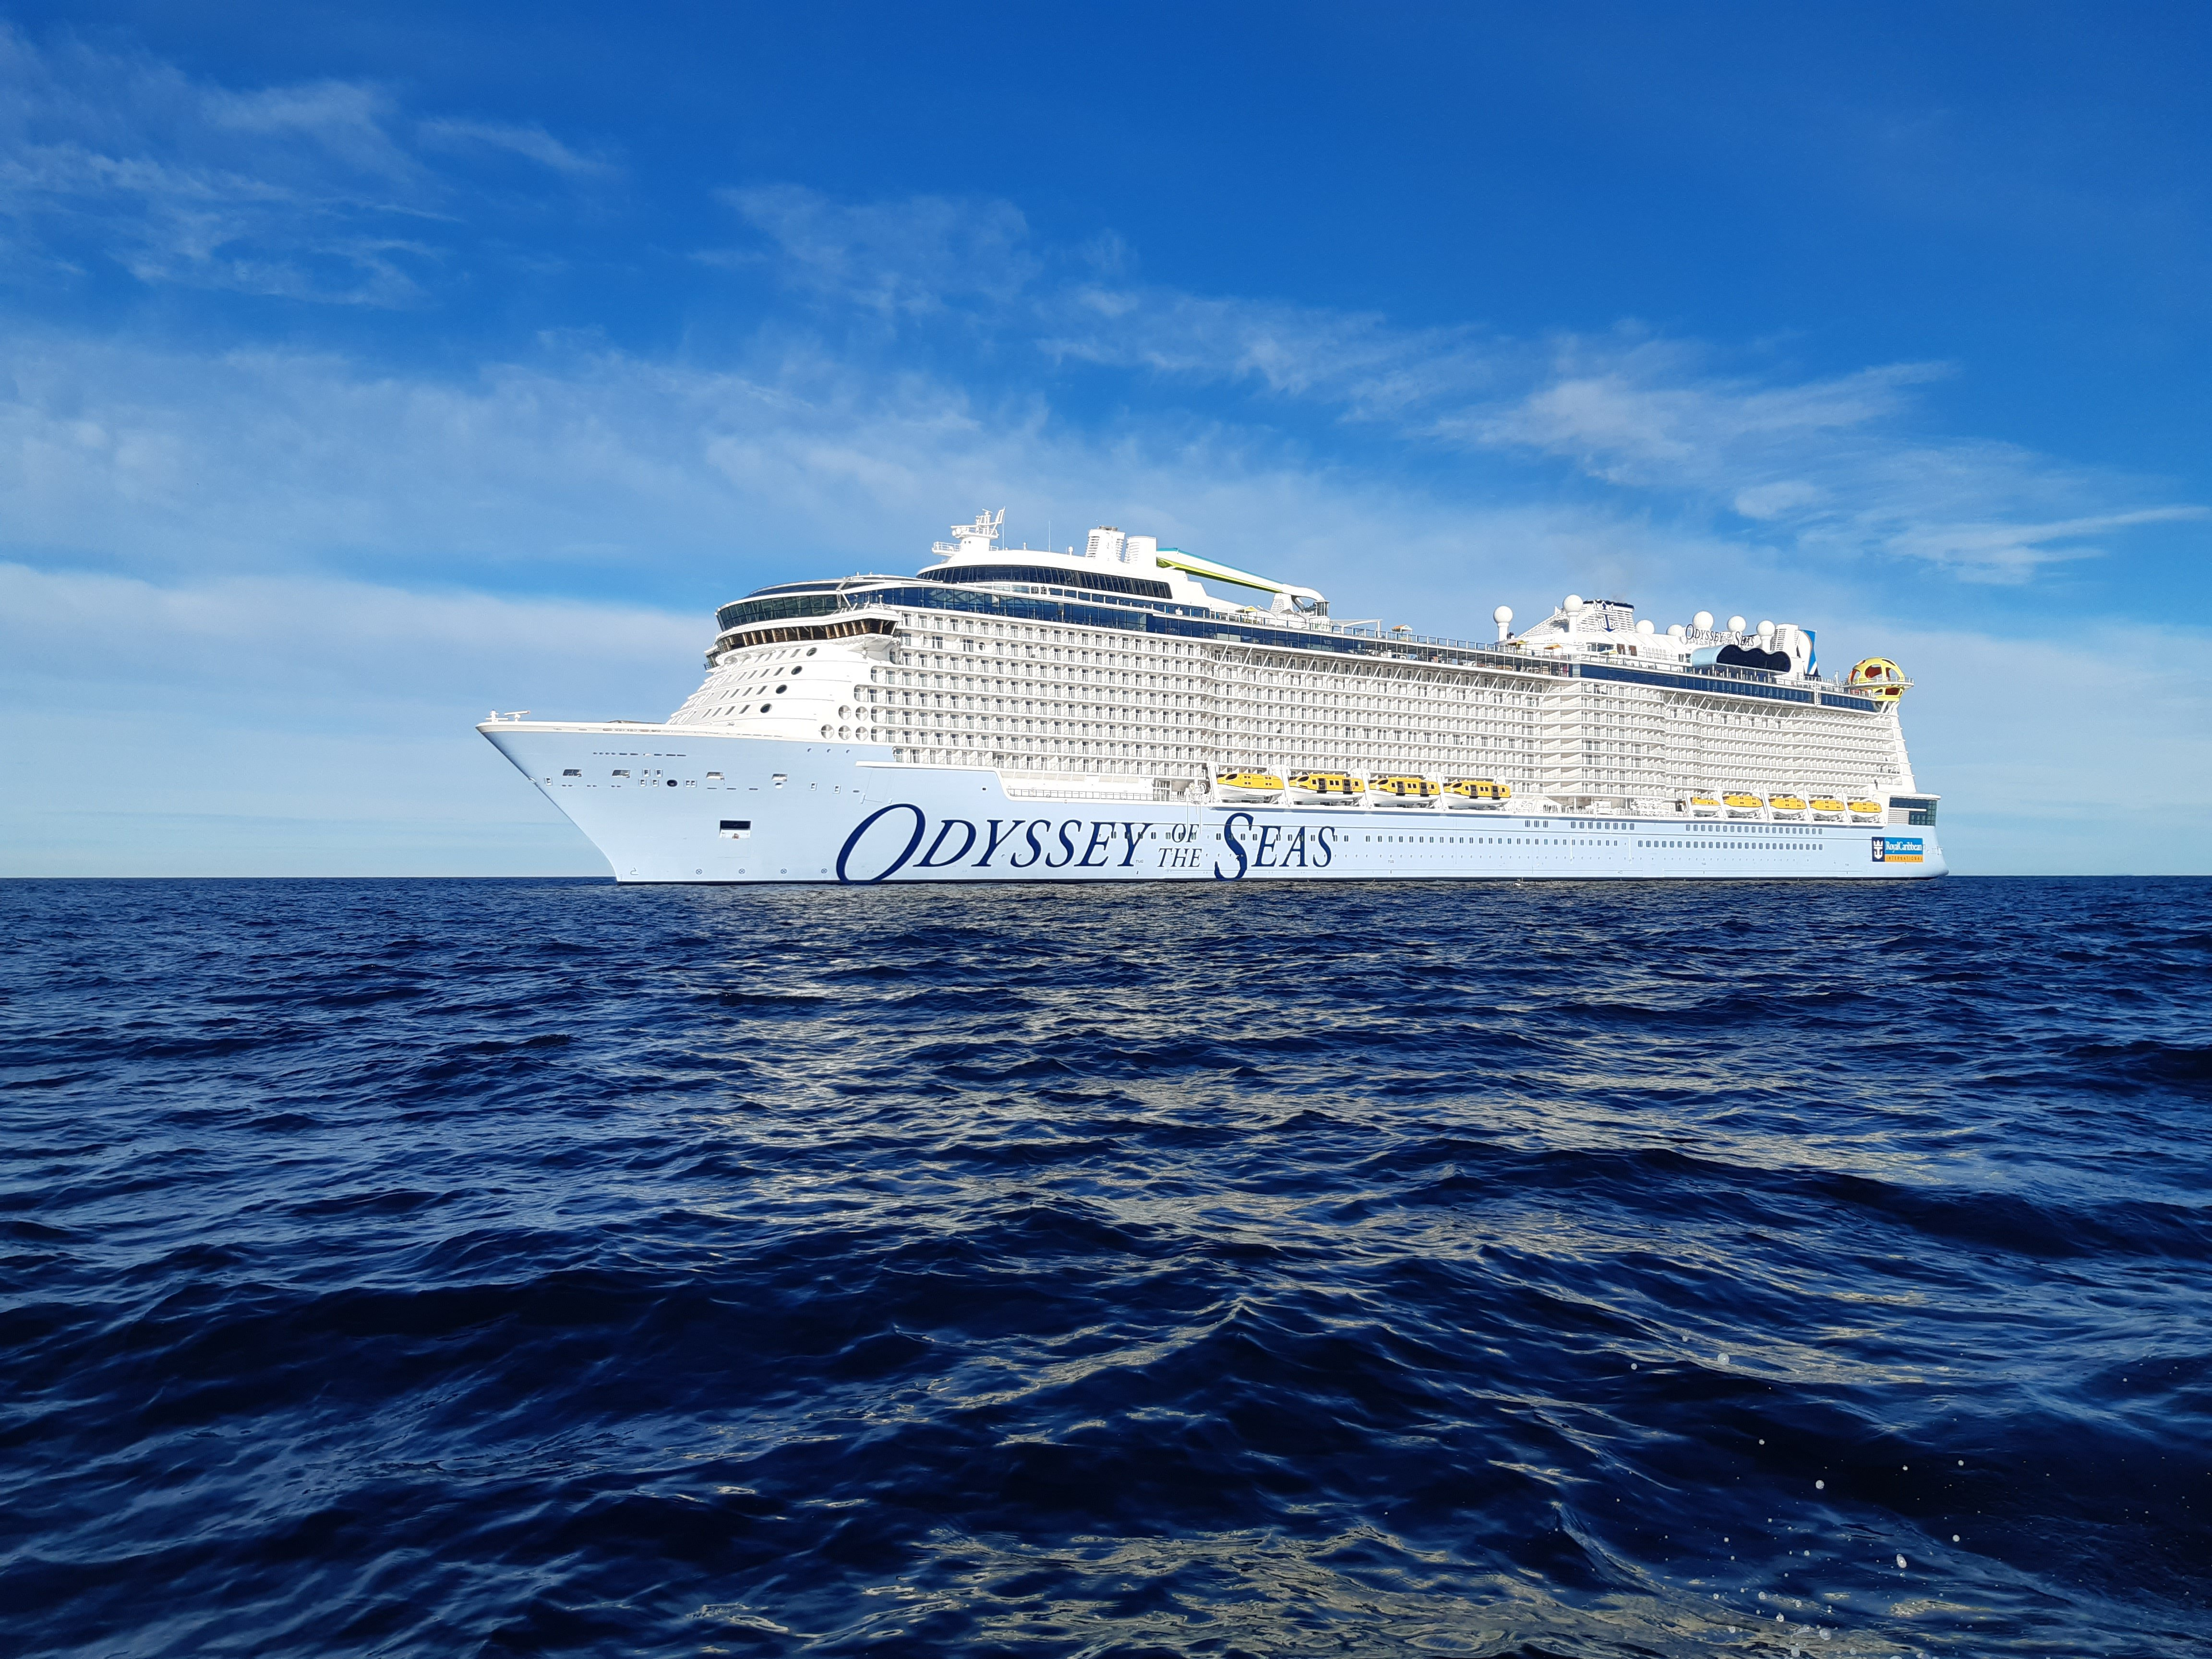 Royal Caribbean Welcomes of Odyssey of the Seas